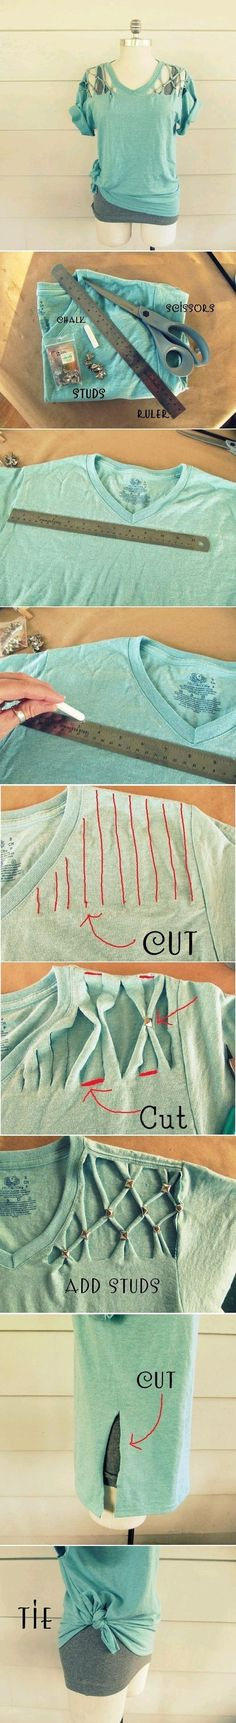 DIY Shirt diy crafts craft ideas easy crafts diy ideas diy crafts diy clothes easy diy fun diy diy shirt craft clothes craft fashion craft shirt fashion house design interior house design room design decorating before and after Do It Yourself Baby, Do It Yourself Fashion, Sewing Hacks, Sewing Crafts, Fashion Bubbles, Craft Projects, Sewing Projects, Do It Yourself Inspiration, Diy Vetement